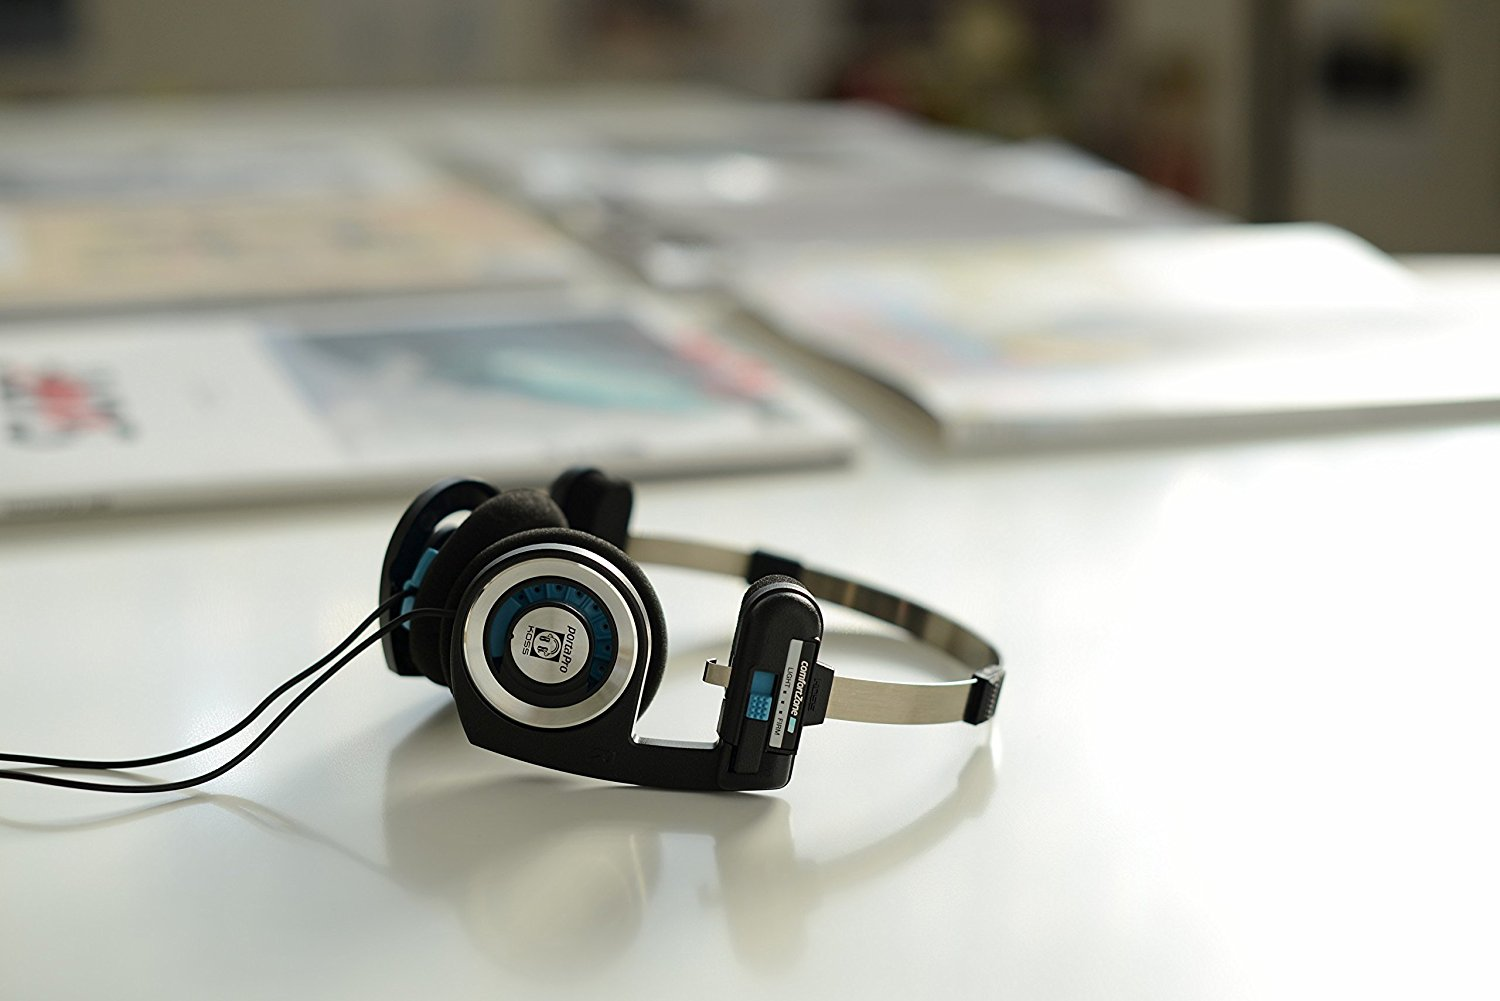 The wired Koss Porta Pro, which requires the 3.5mm headphone jack.